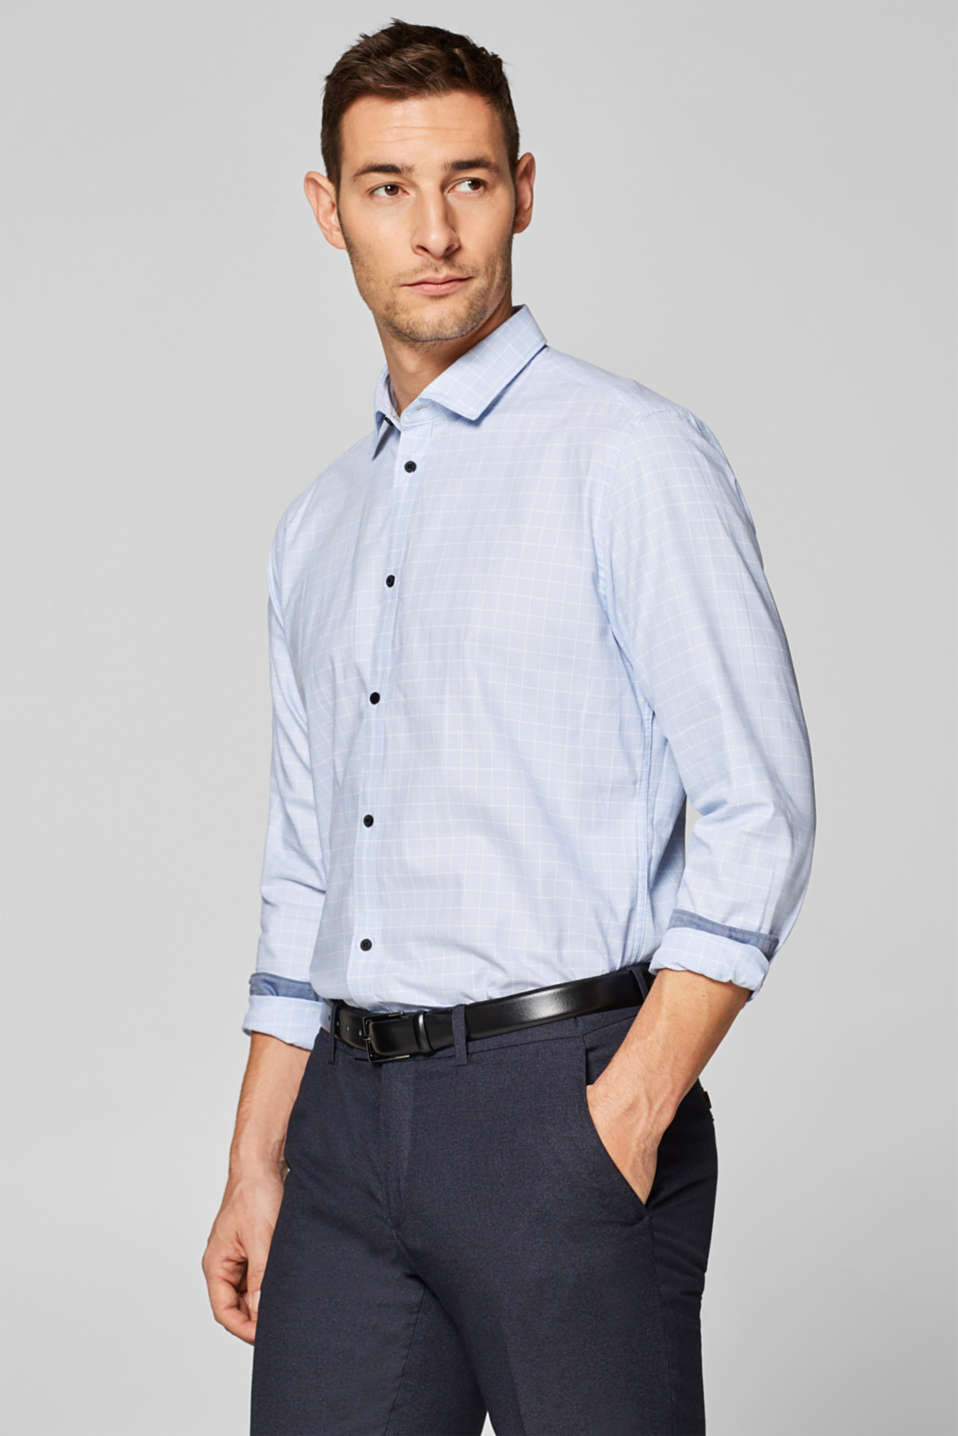 Esprit - Woven shirt with latticework, 100% cotton